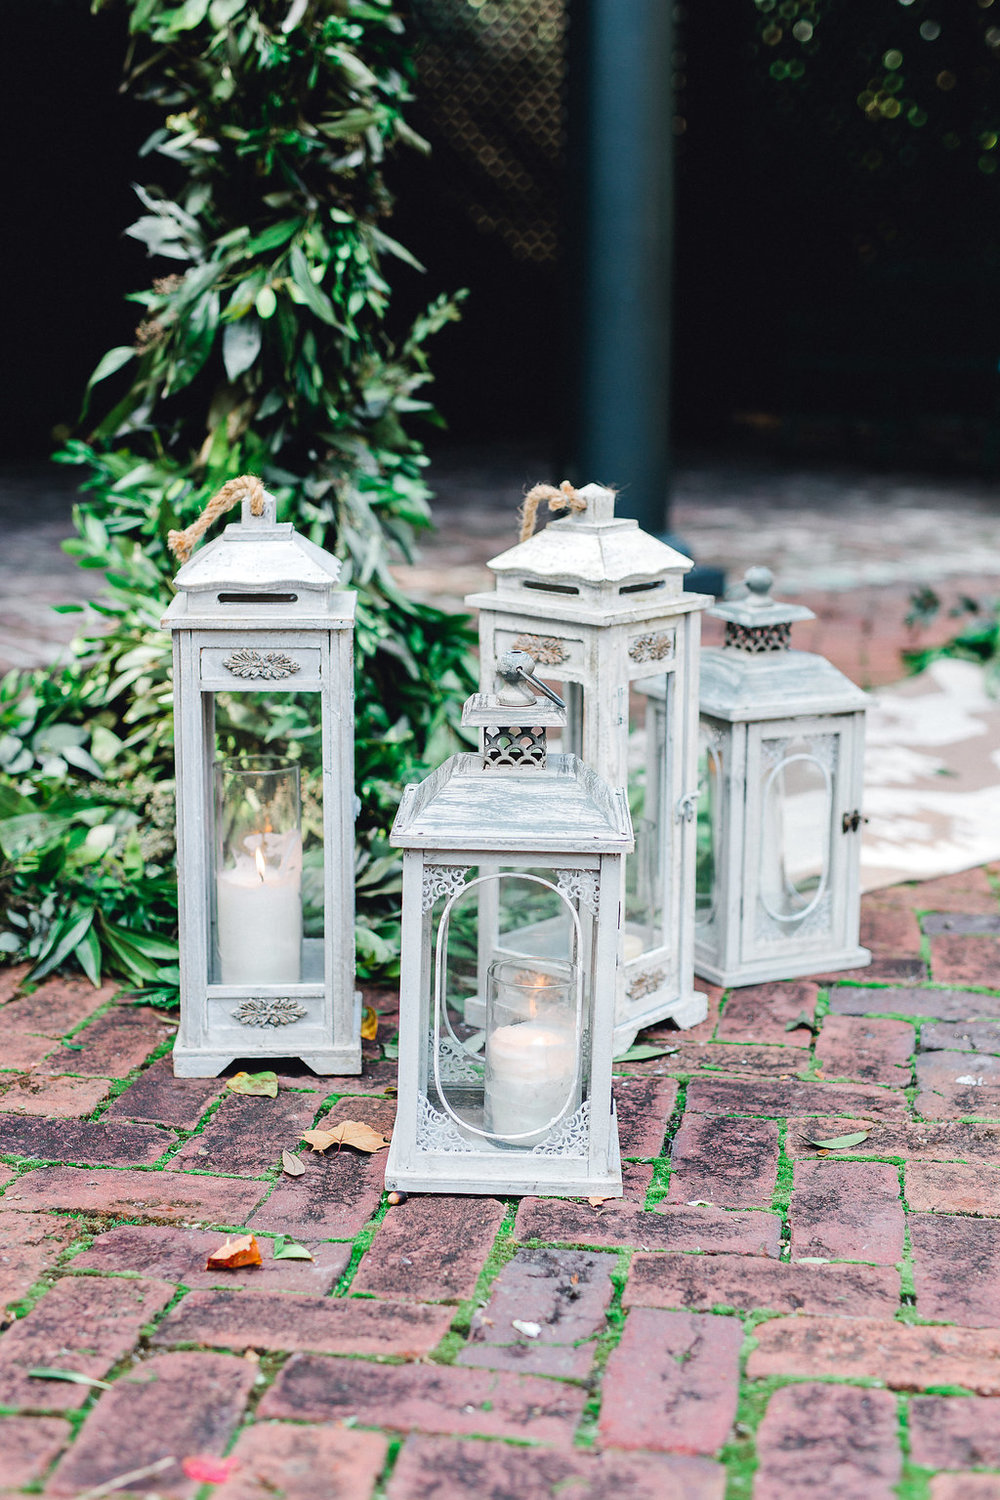 ships-of-the-sea-wedding-inspiration-lanterns-savannah-wedding-planner-savannah-event-designer-savannah-ceremony-wedding-inspiration-lanterns-wedding-inspiration.JPG